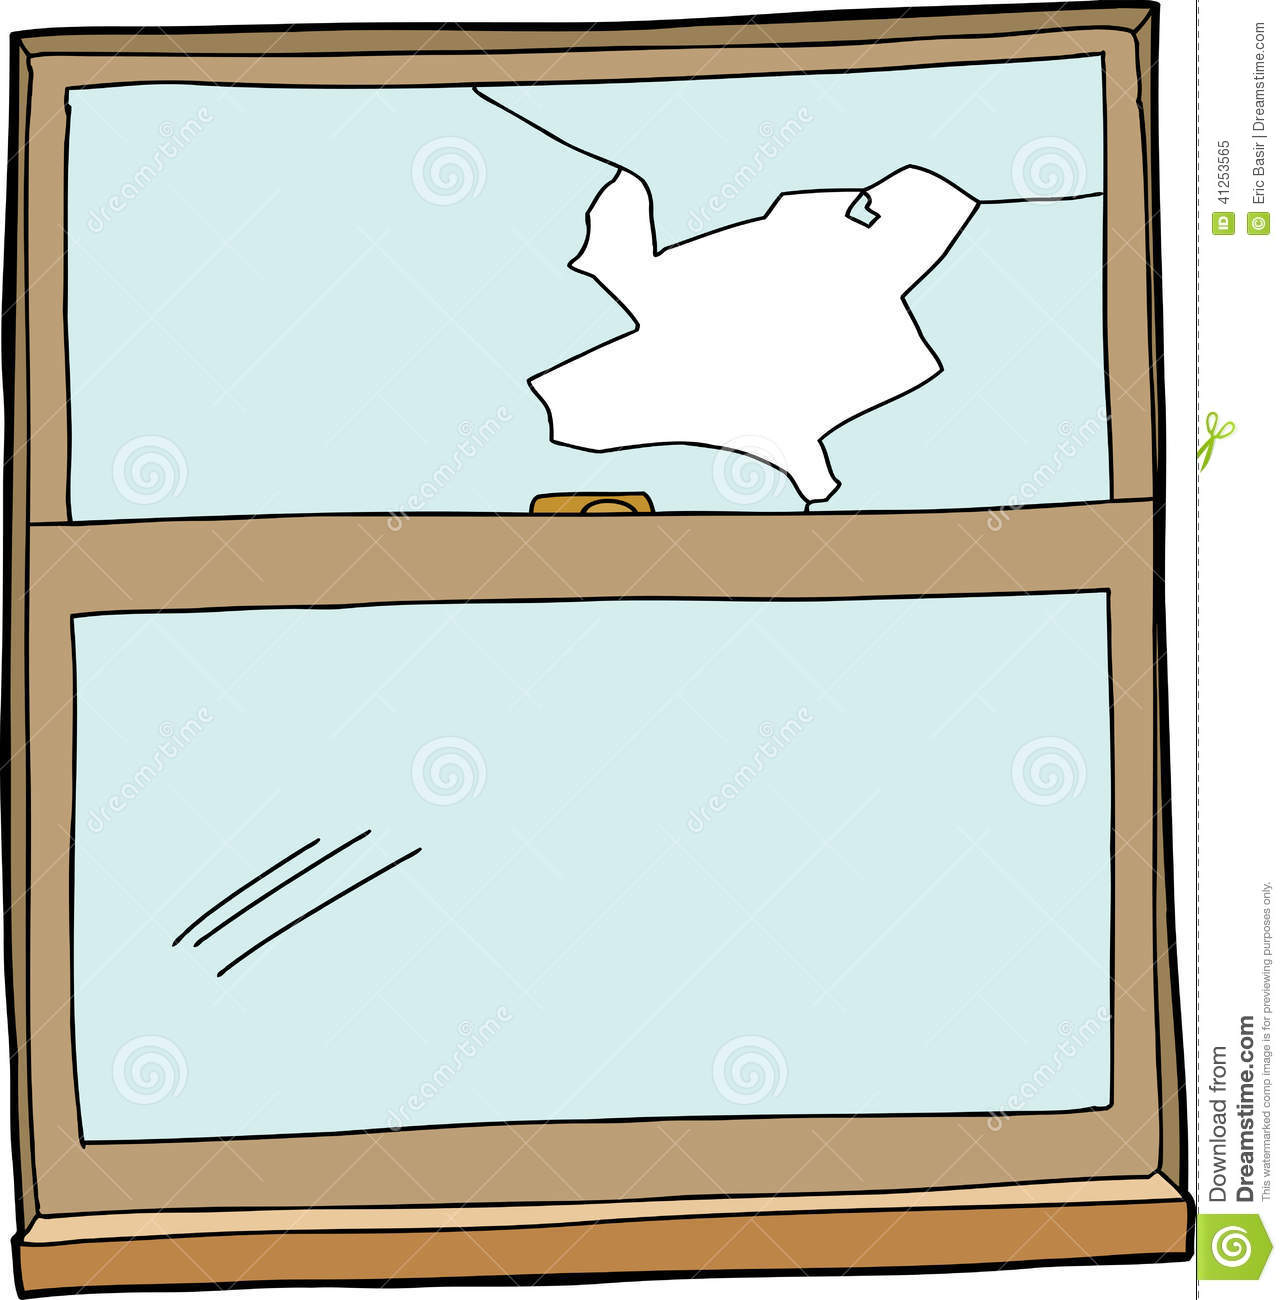 Glass Window Clip Art : Broken window clipart suggest